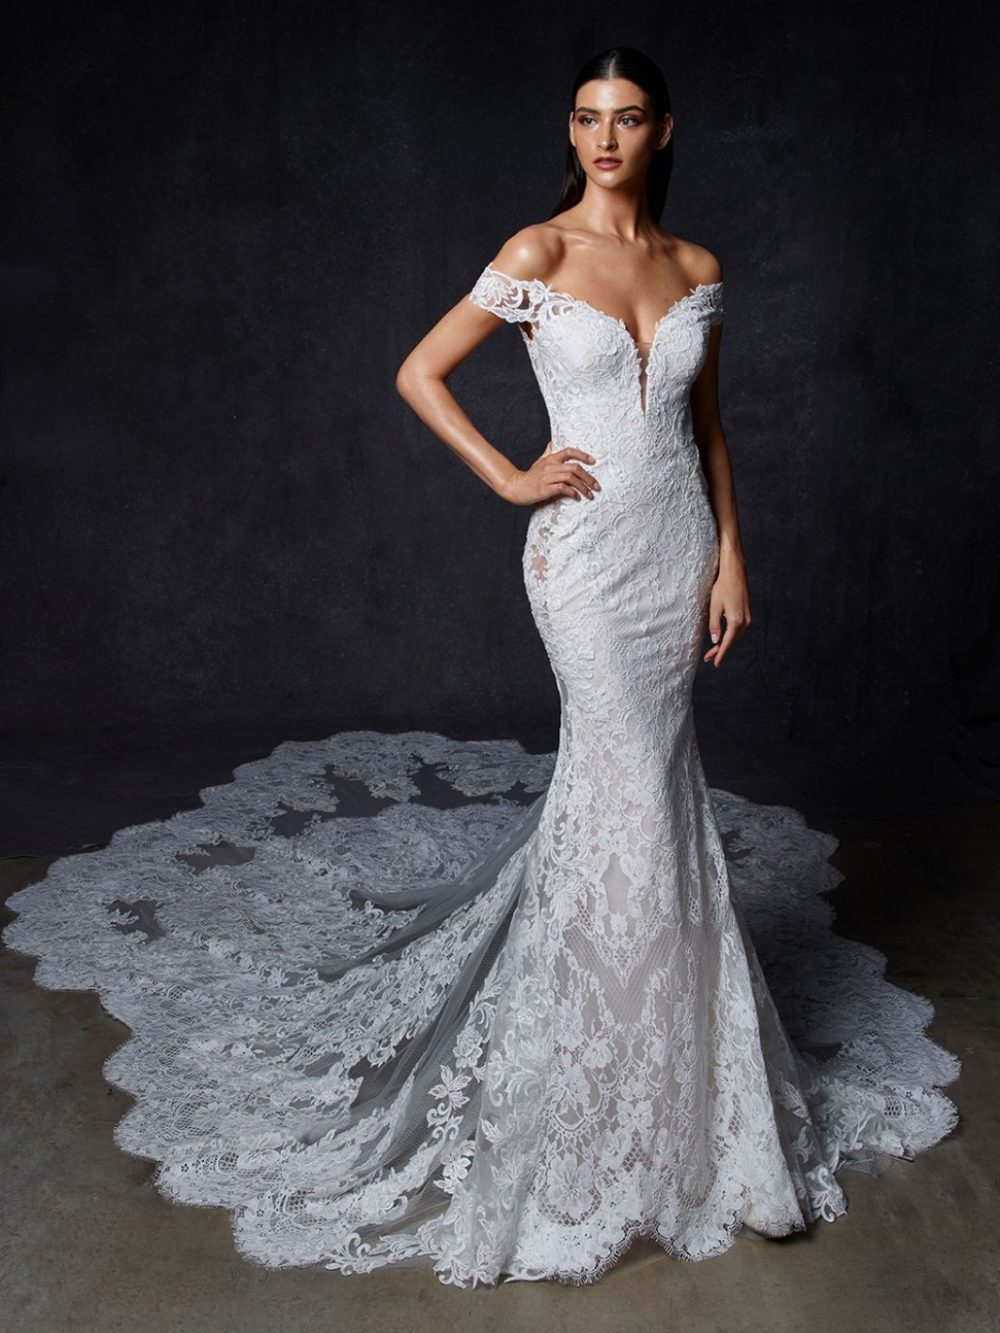 Olive by Enzoani Wedding gown dress